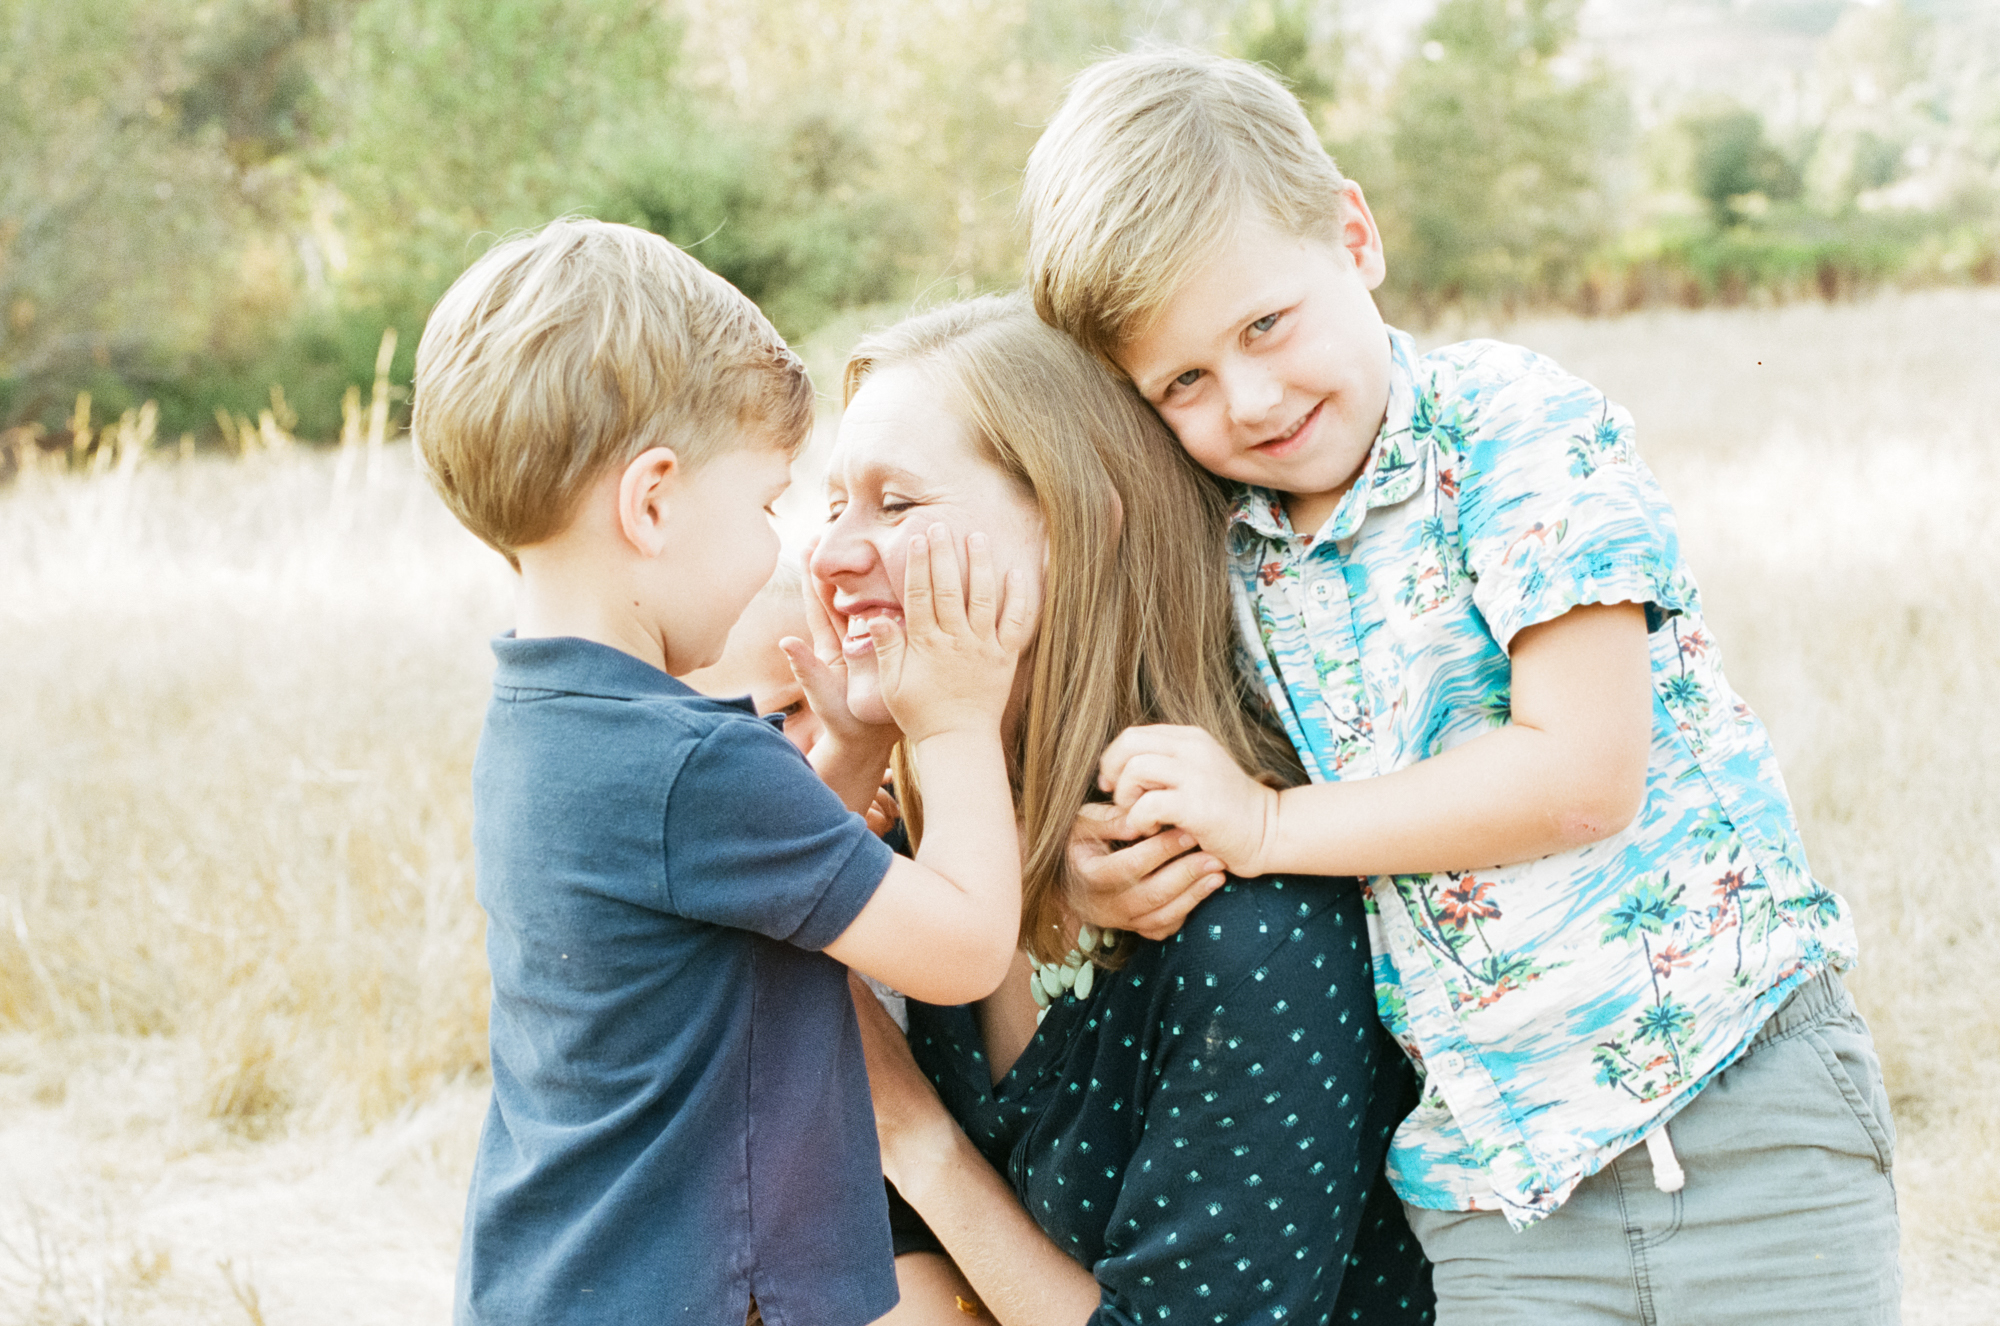 photographer-minneapolis-family-mother-and-sons-amy-berge.jpg